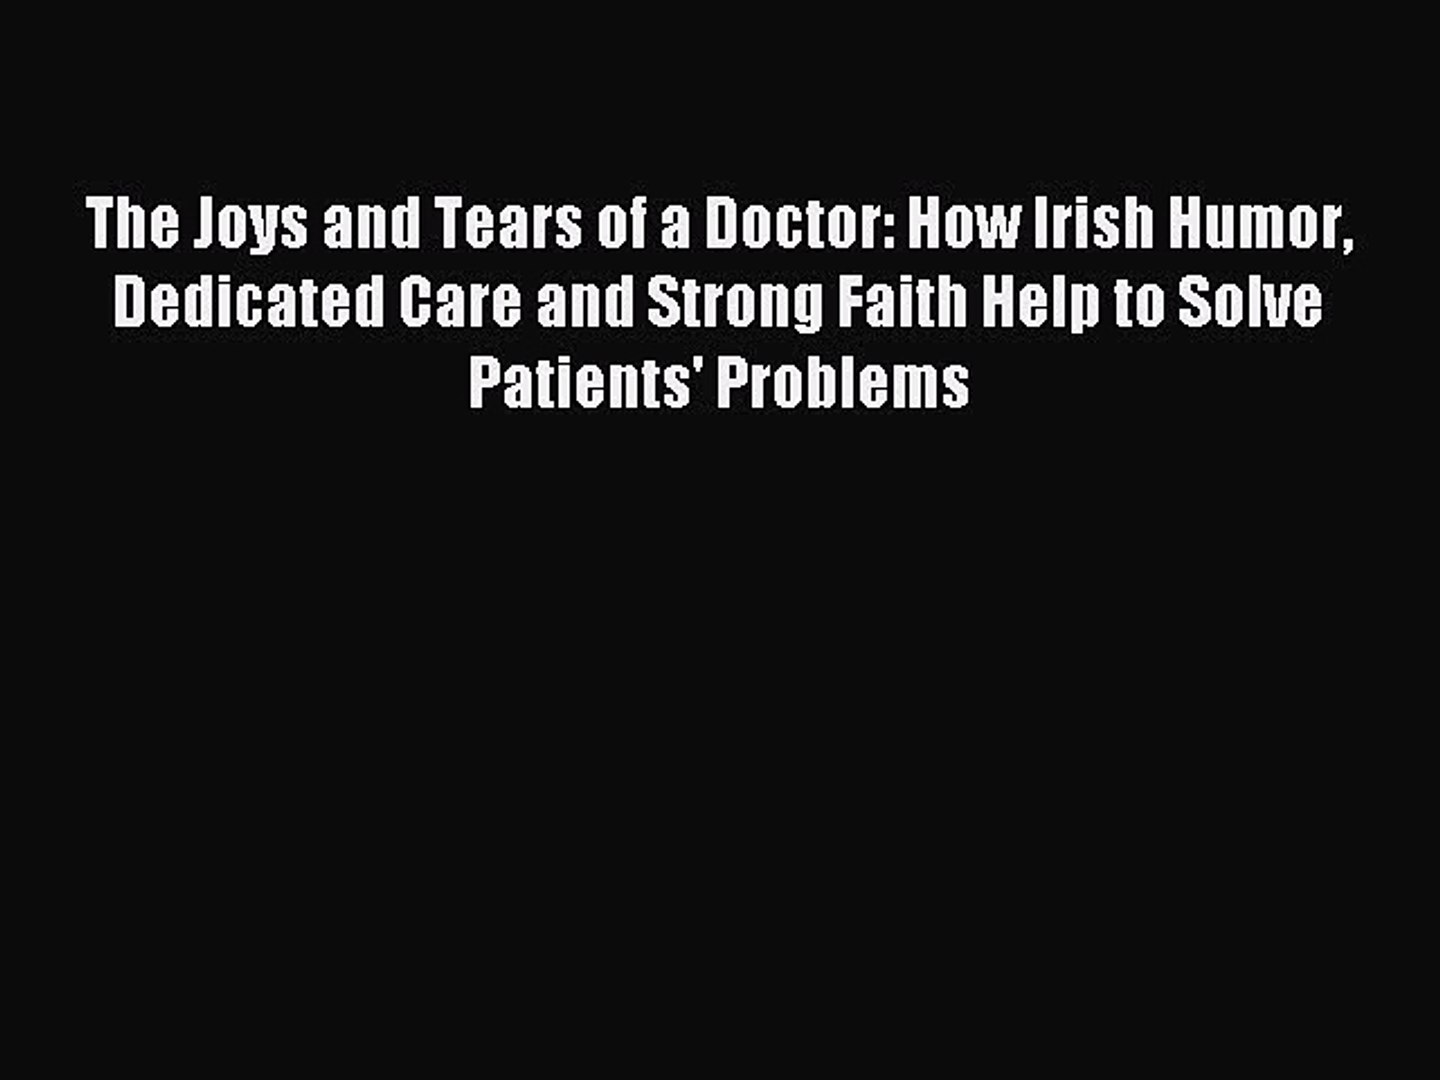 Read The Joys and Tears of a Doctor: How Irish Humor Dedicated Care and Strong Faith Help to